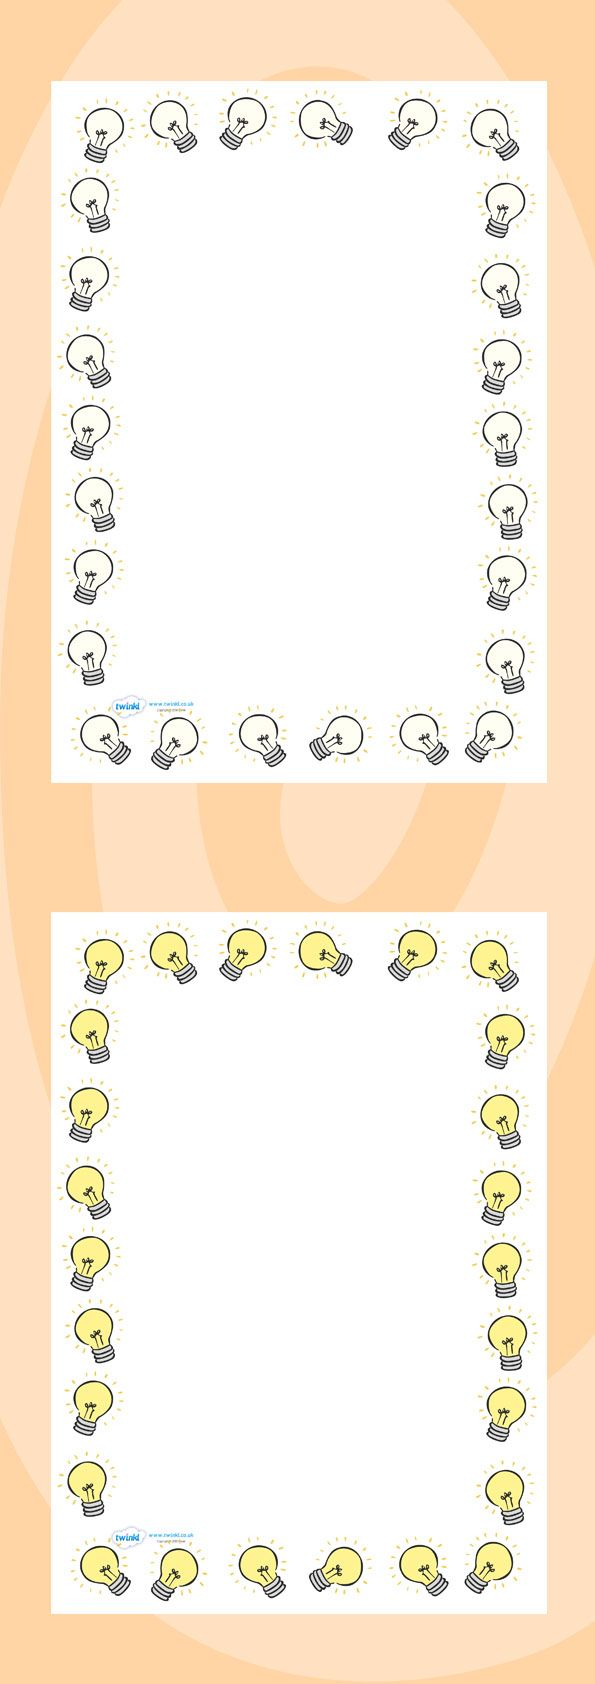 Little loops double page border free page borders - Twinkl Resources Light Bulb Page Borders Thousands Of Printable Primary Teaching Resources